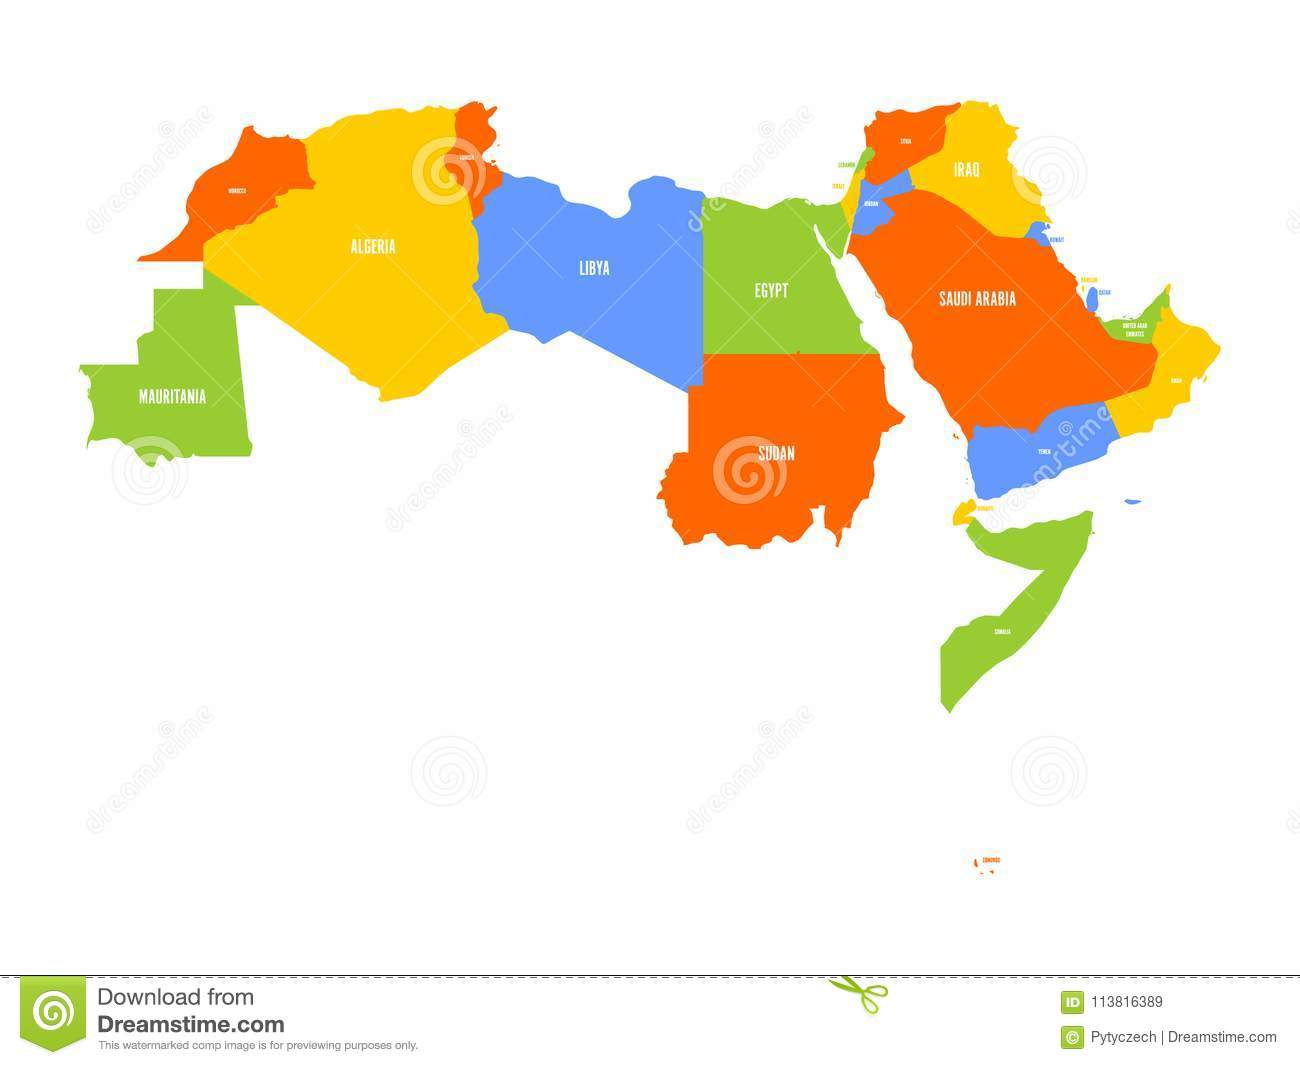 Arab World States Political Map 22 Arabic speaking Countries